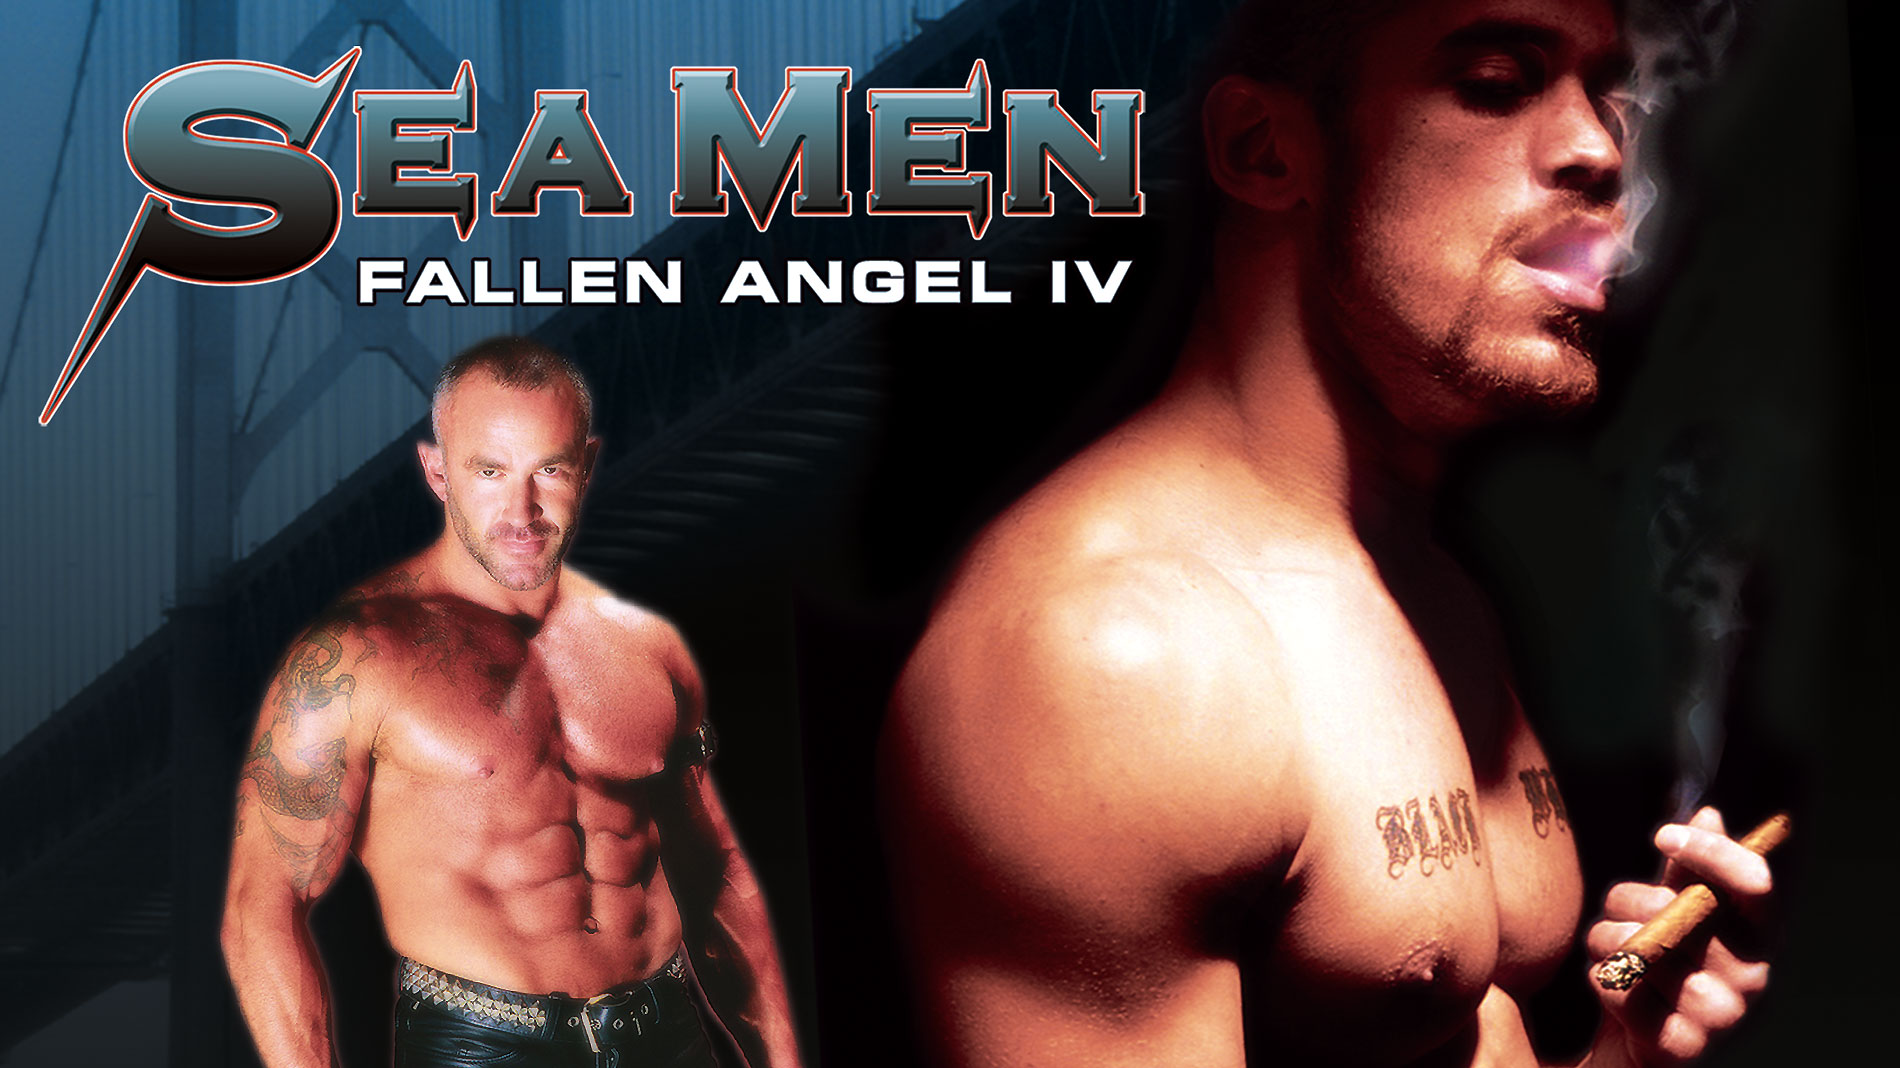 Sea Men: Fallen Angel 4 trailer